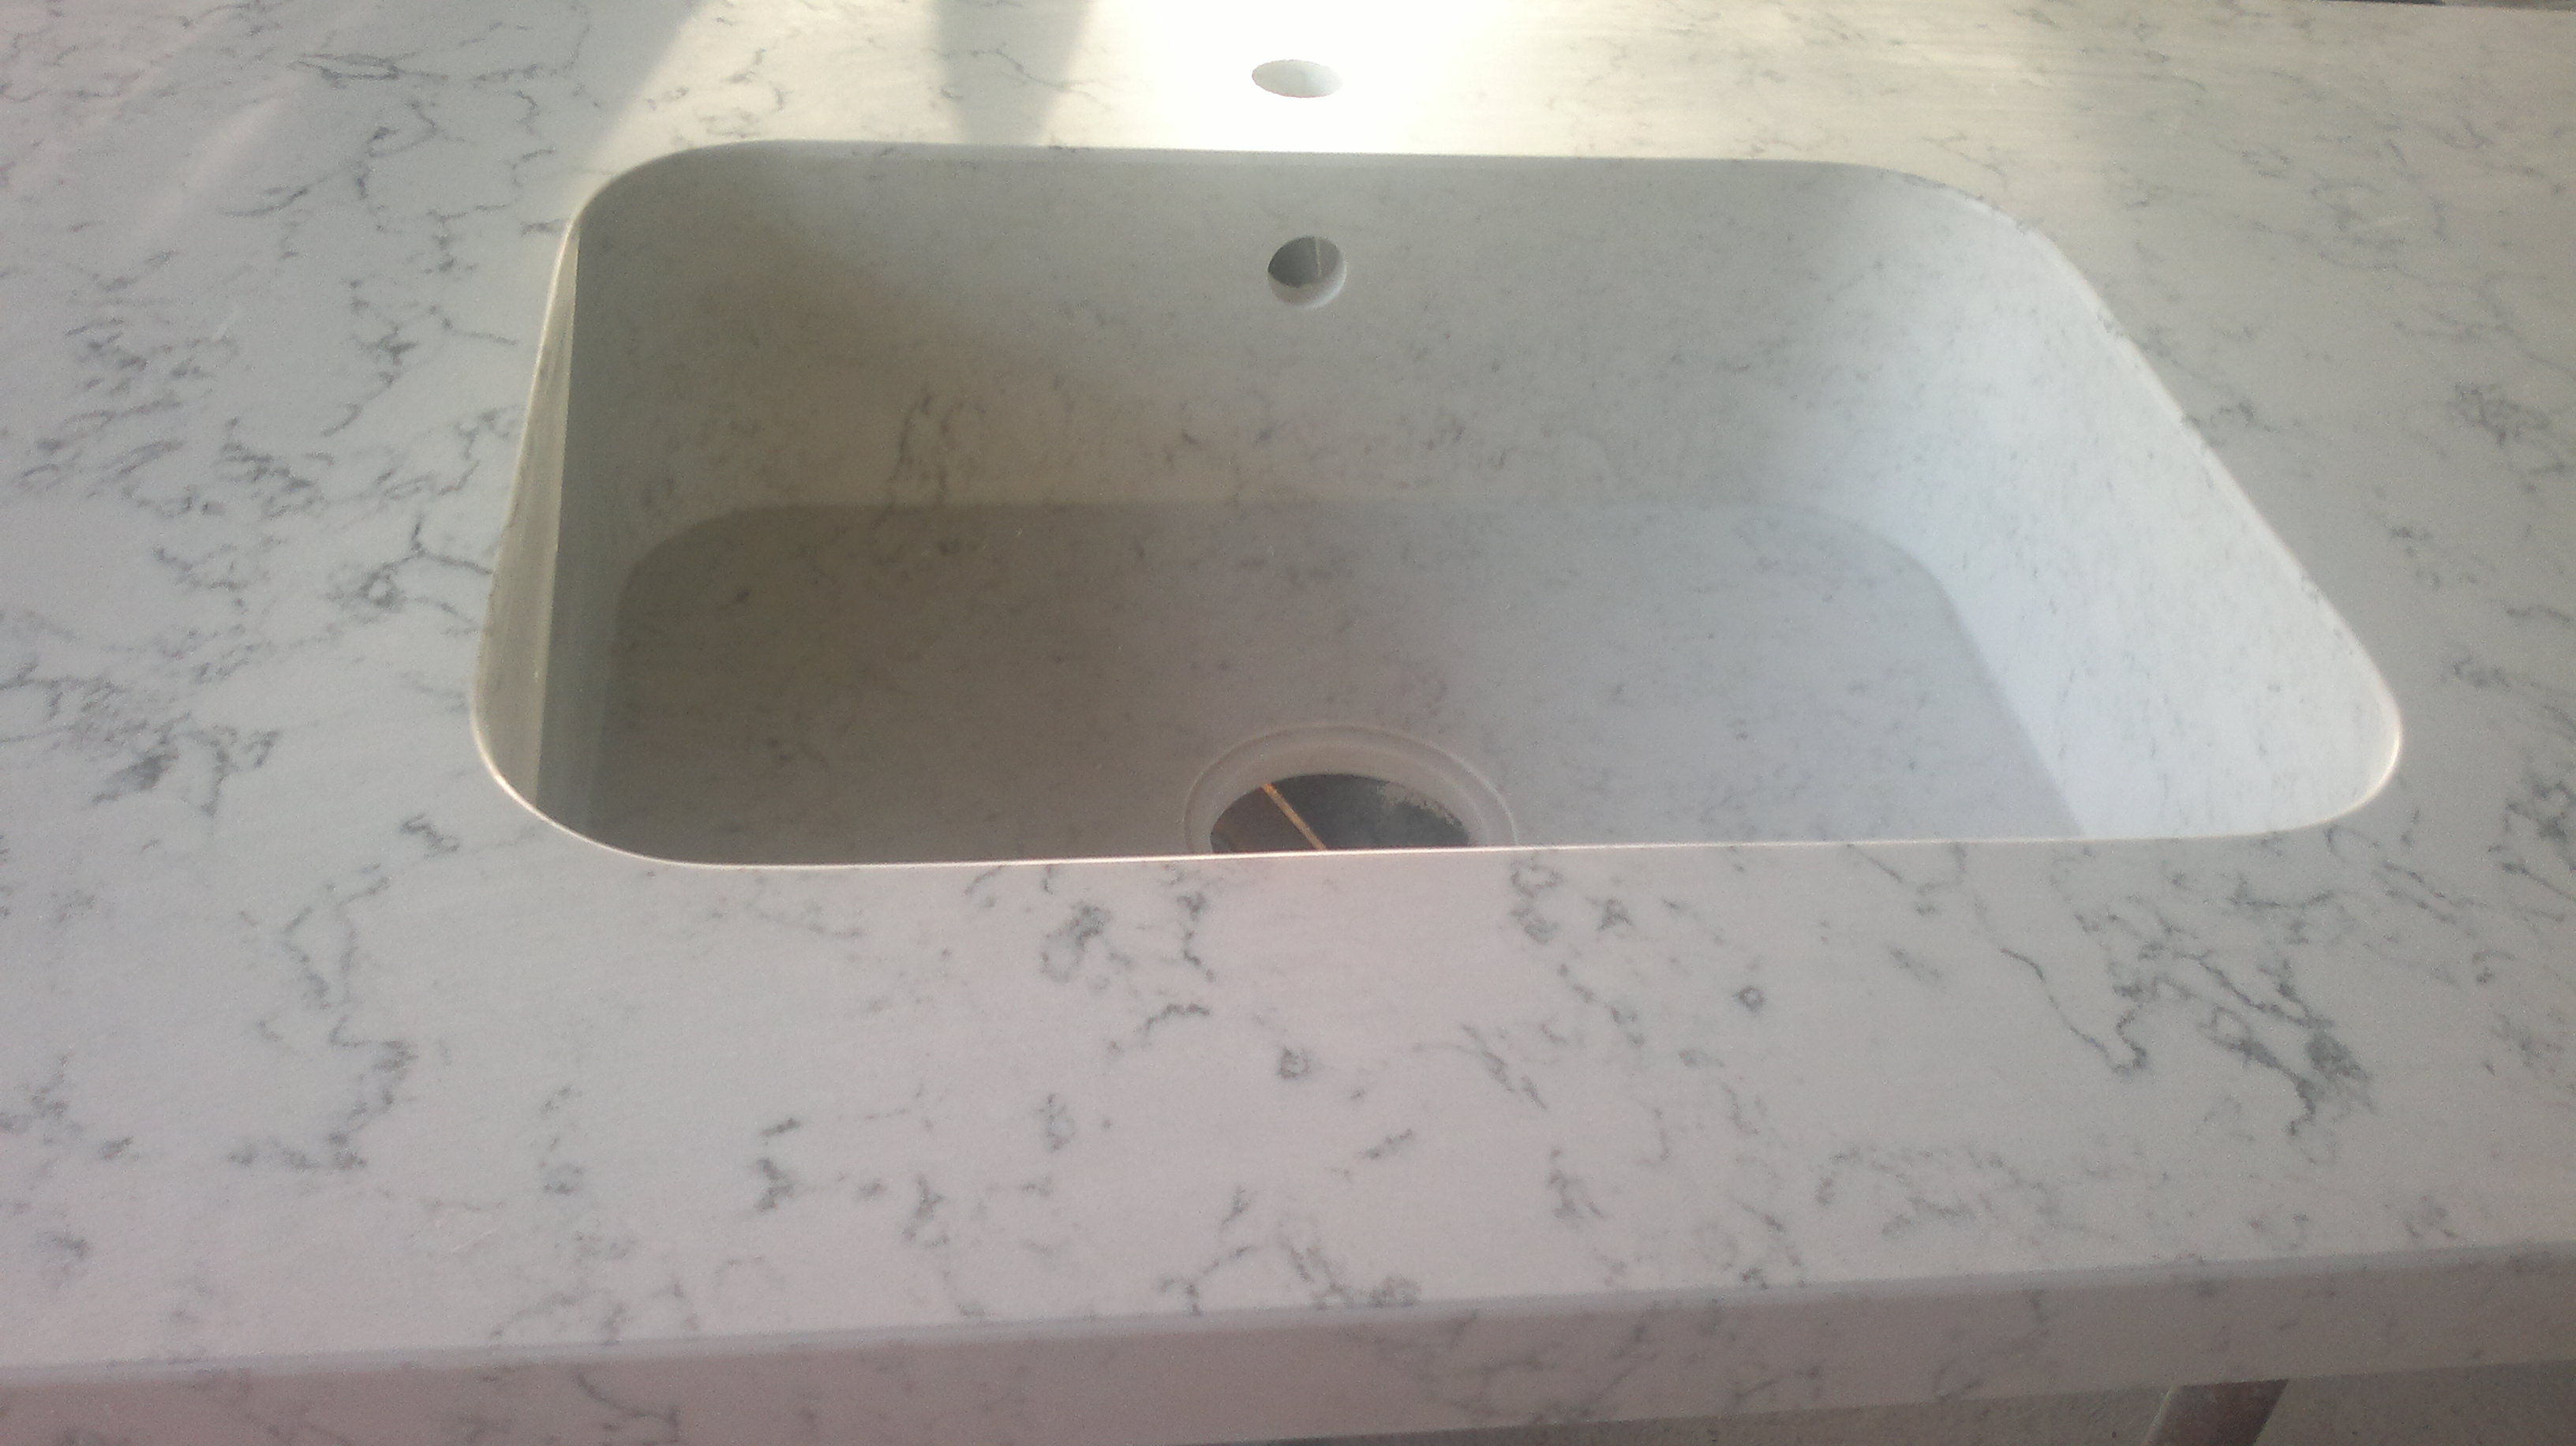 Pica silestone integrada